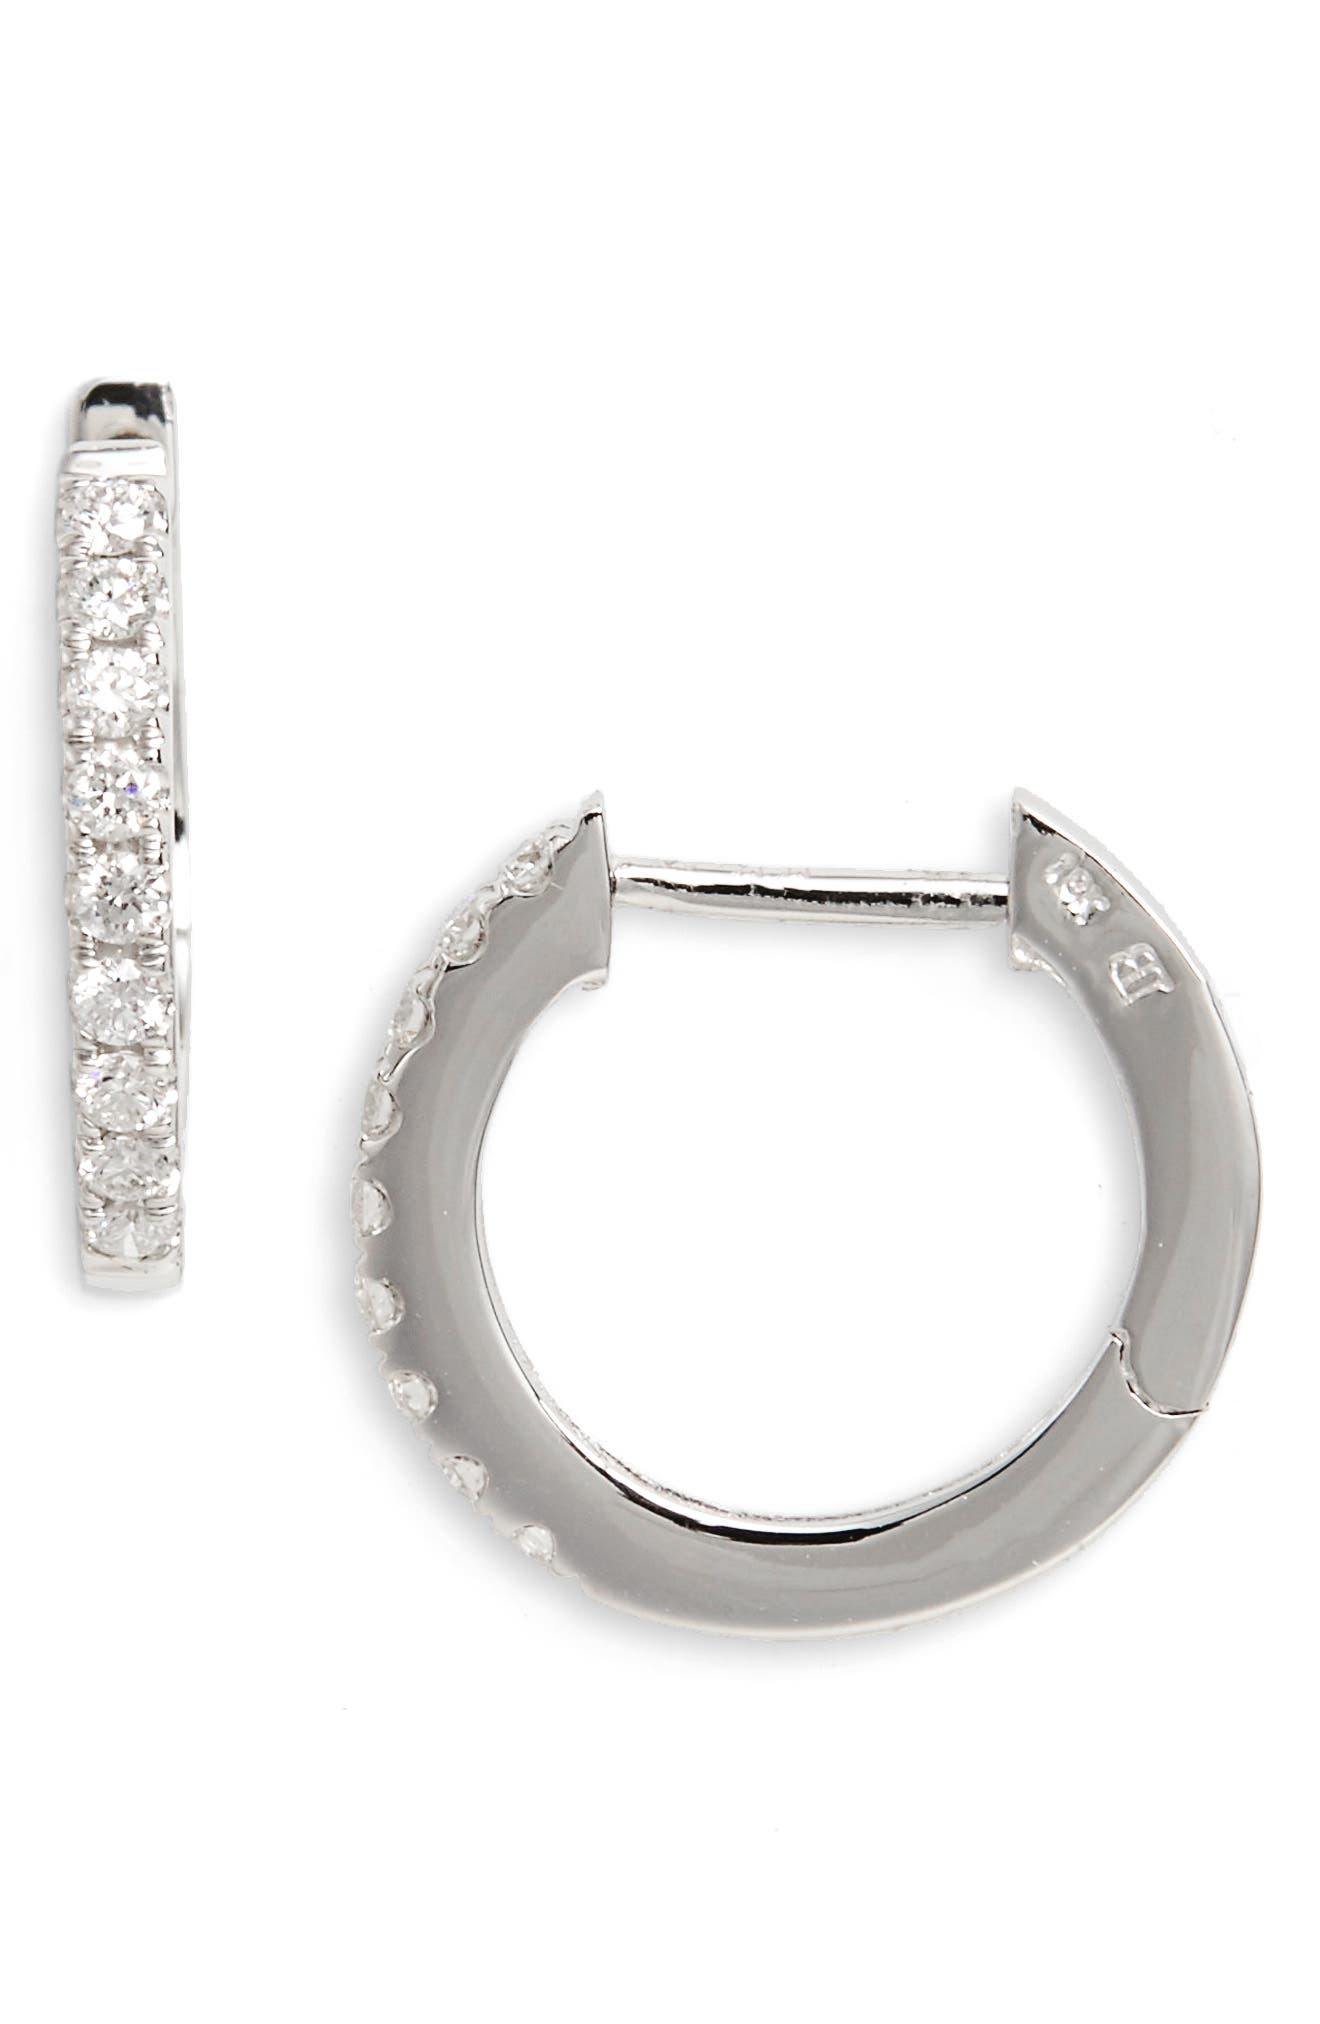 Diamond Hoop Earrings,                             Main thumbnail 1, color,                             WHITE GOLD